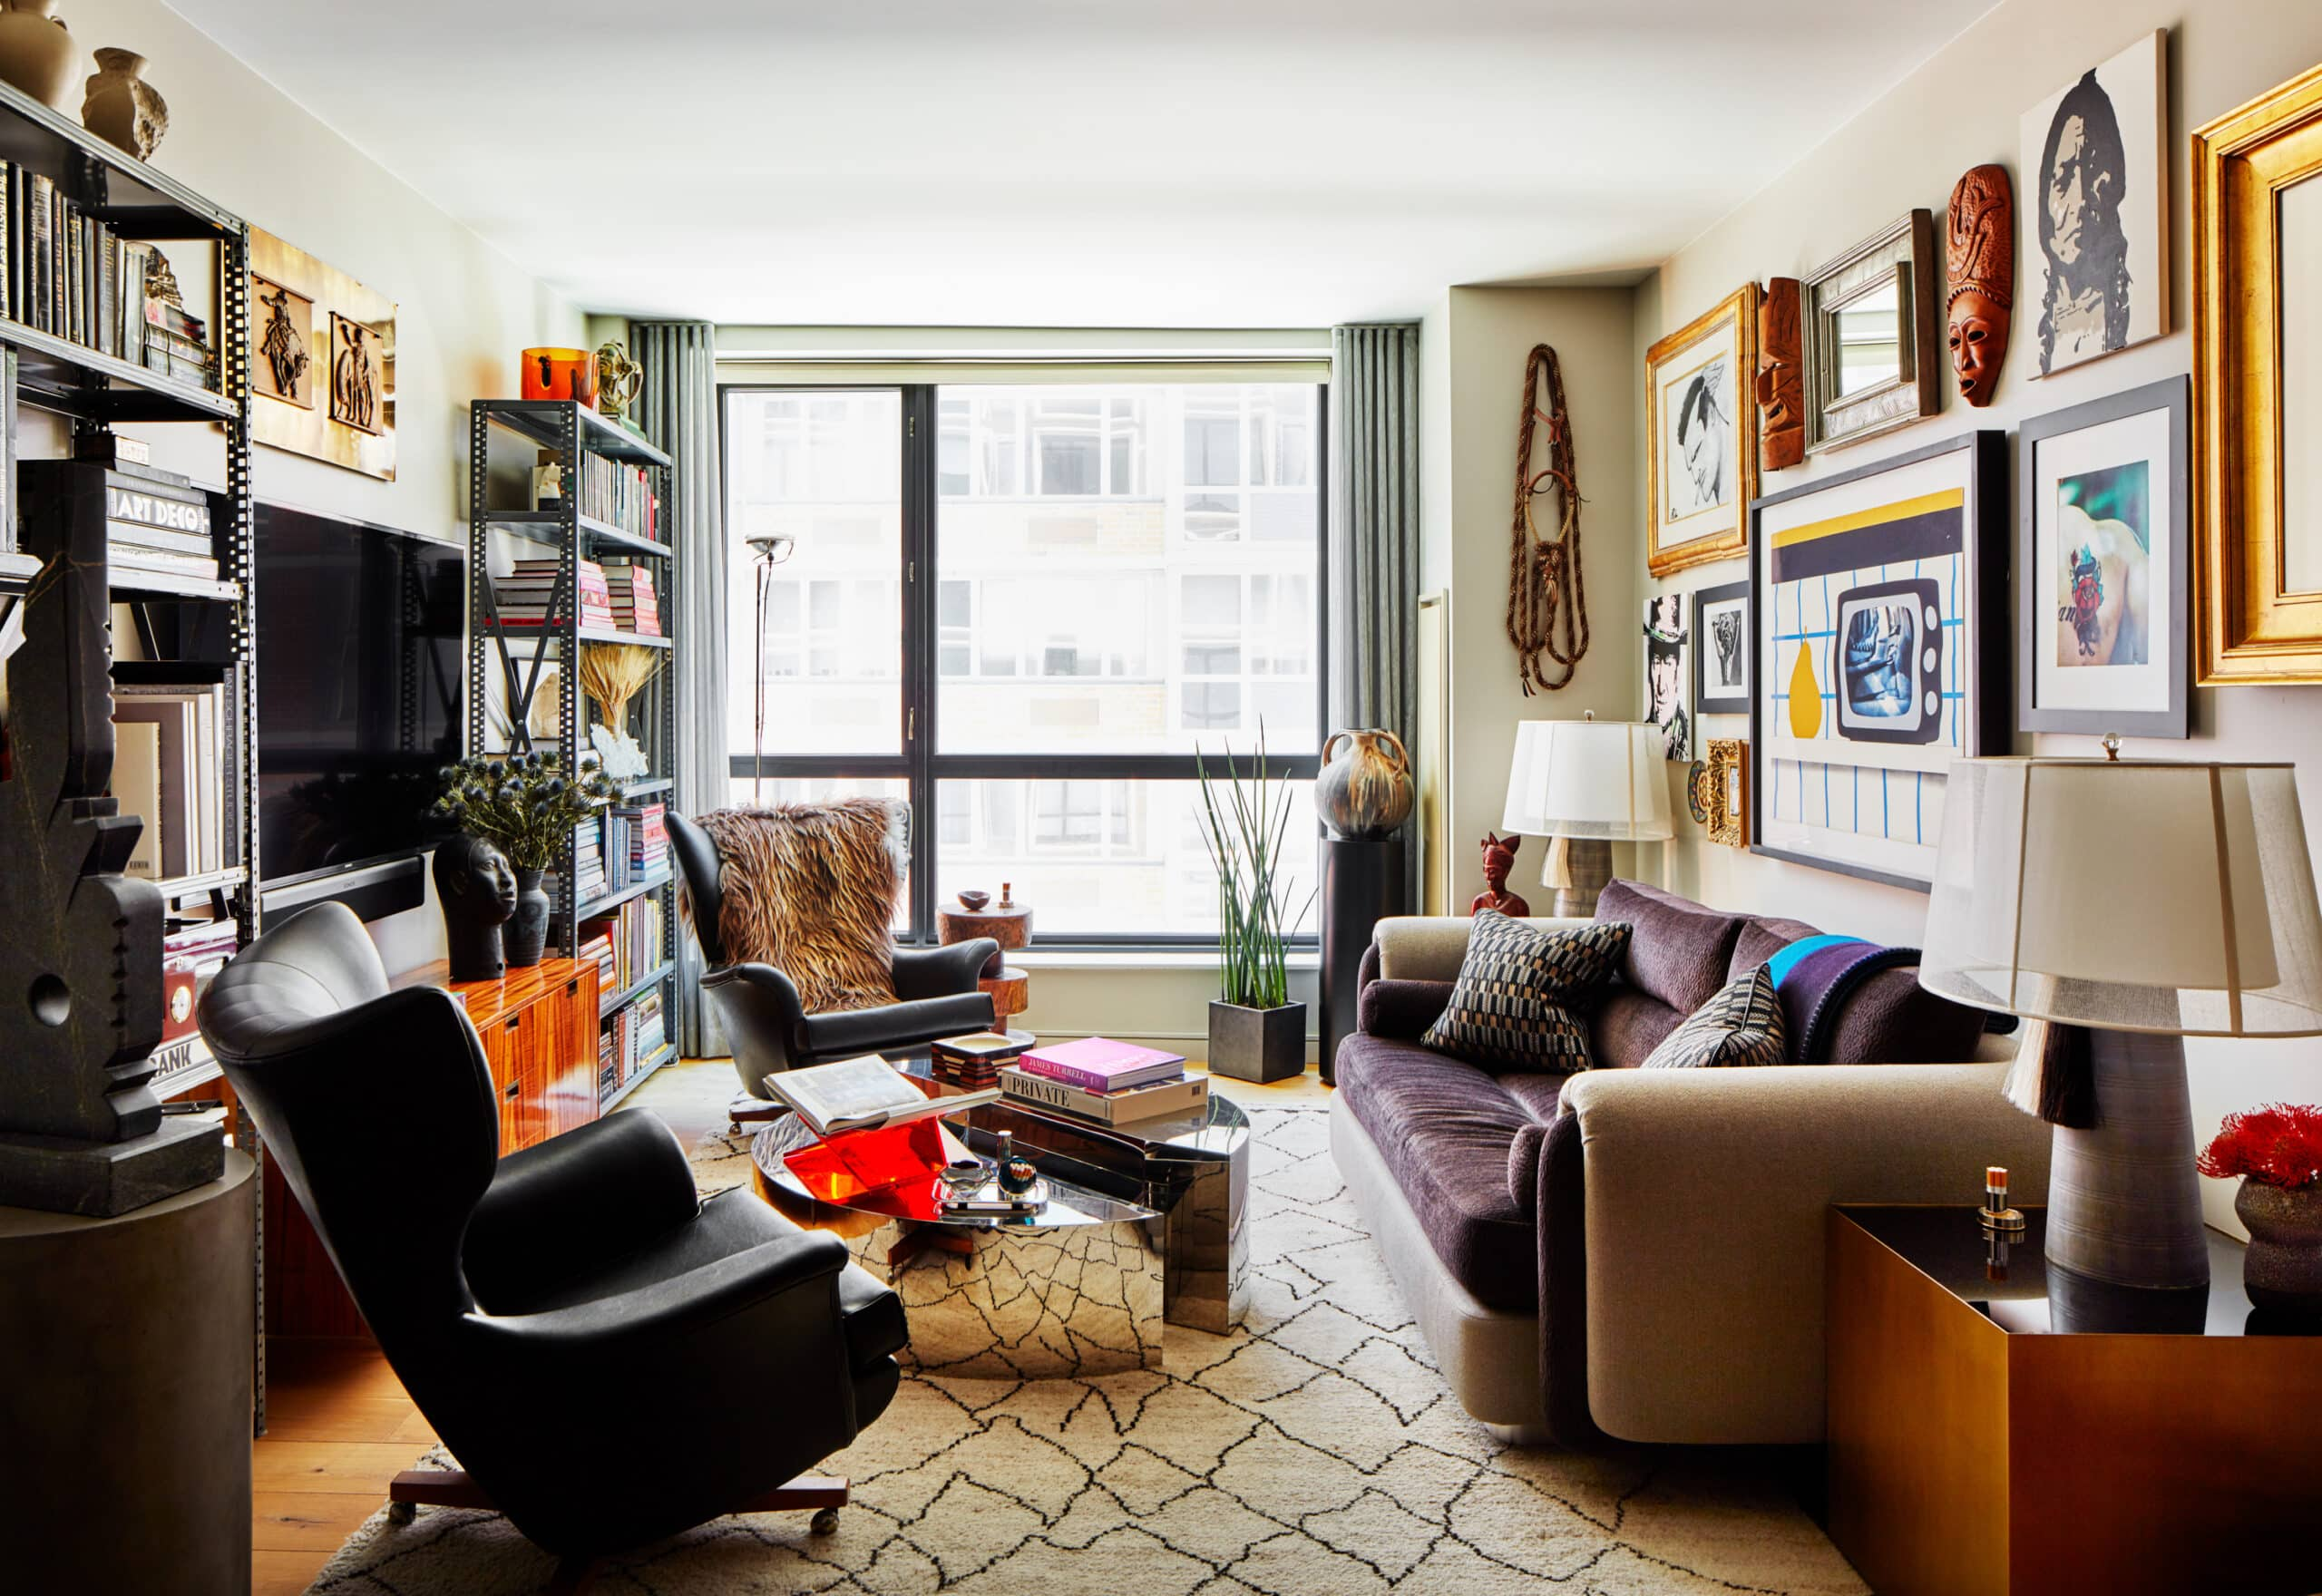 Andrew Torrey's living room in New York